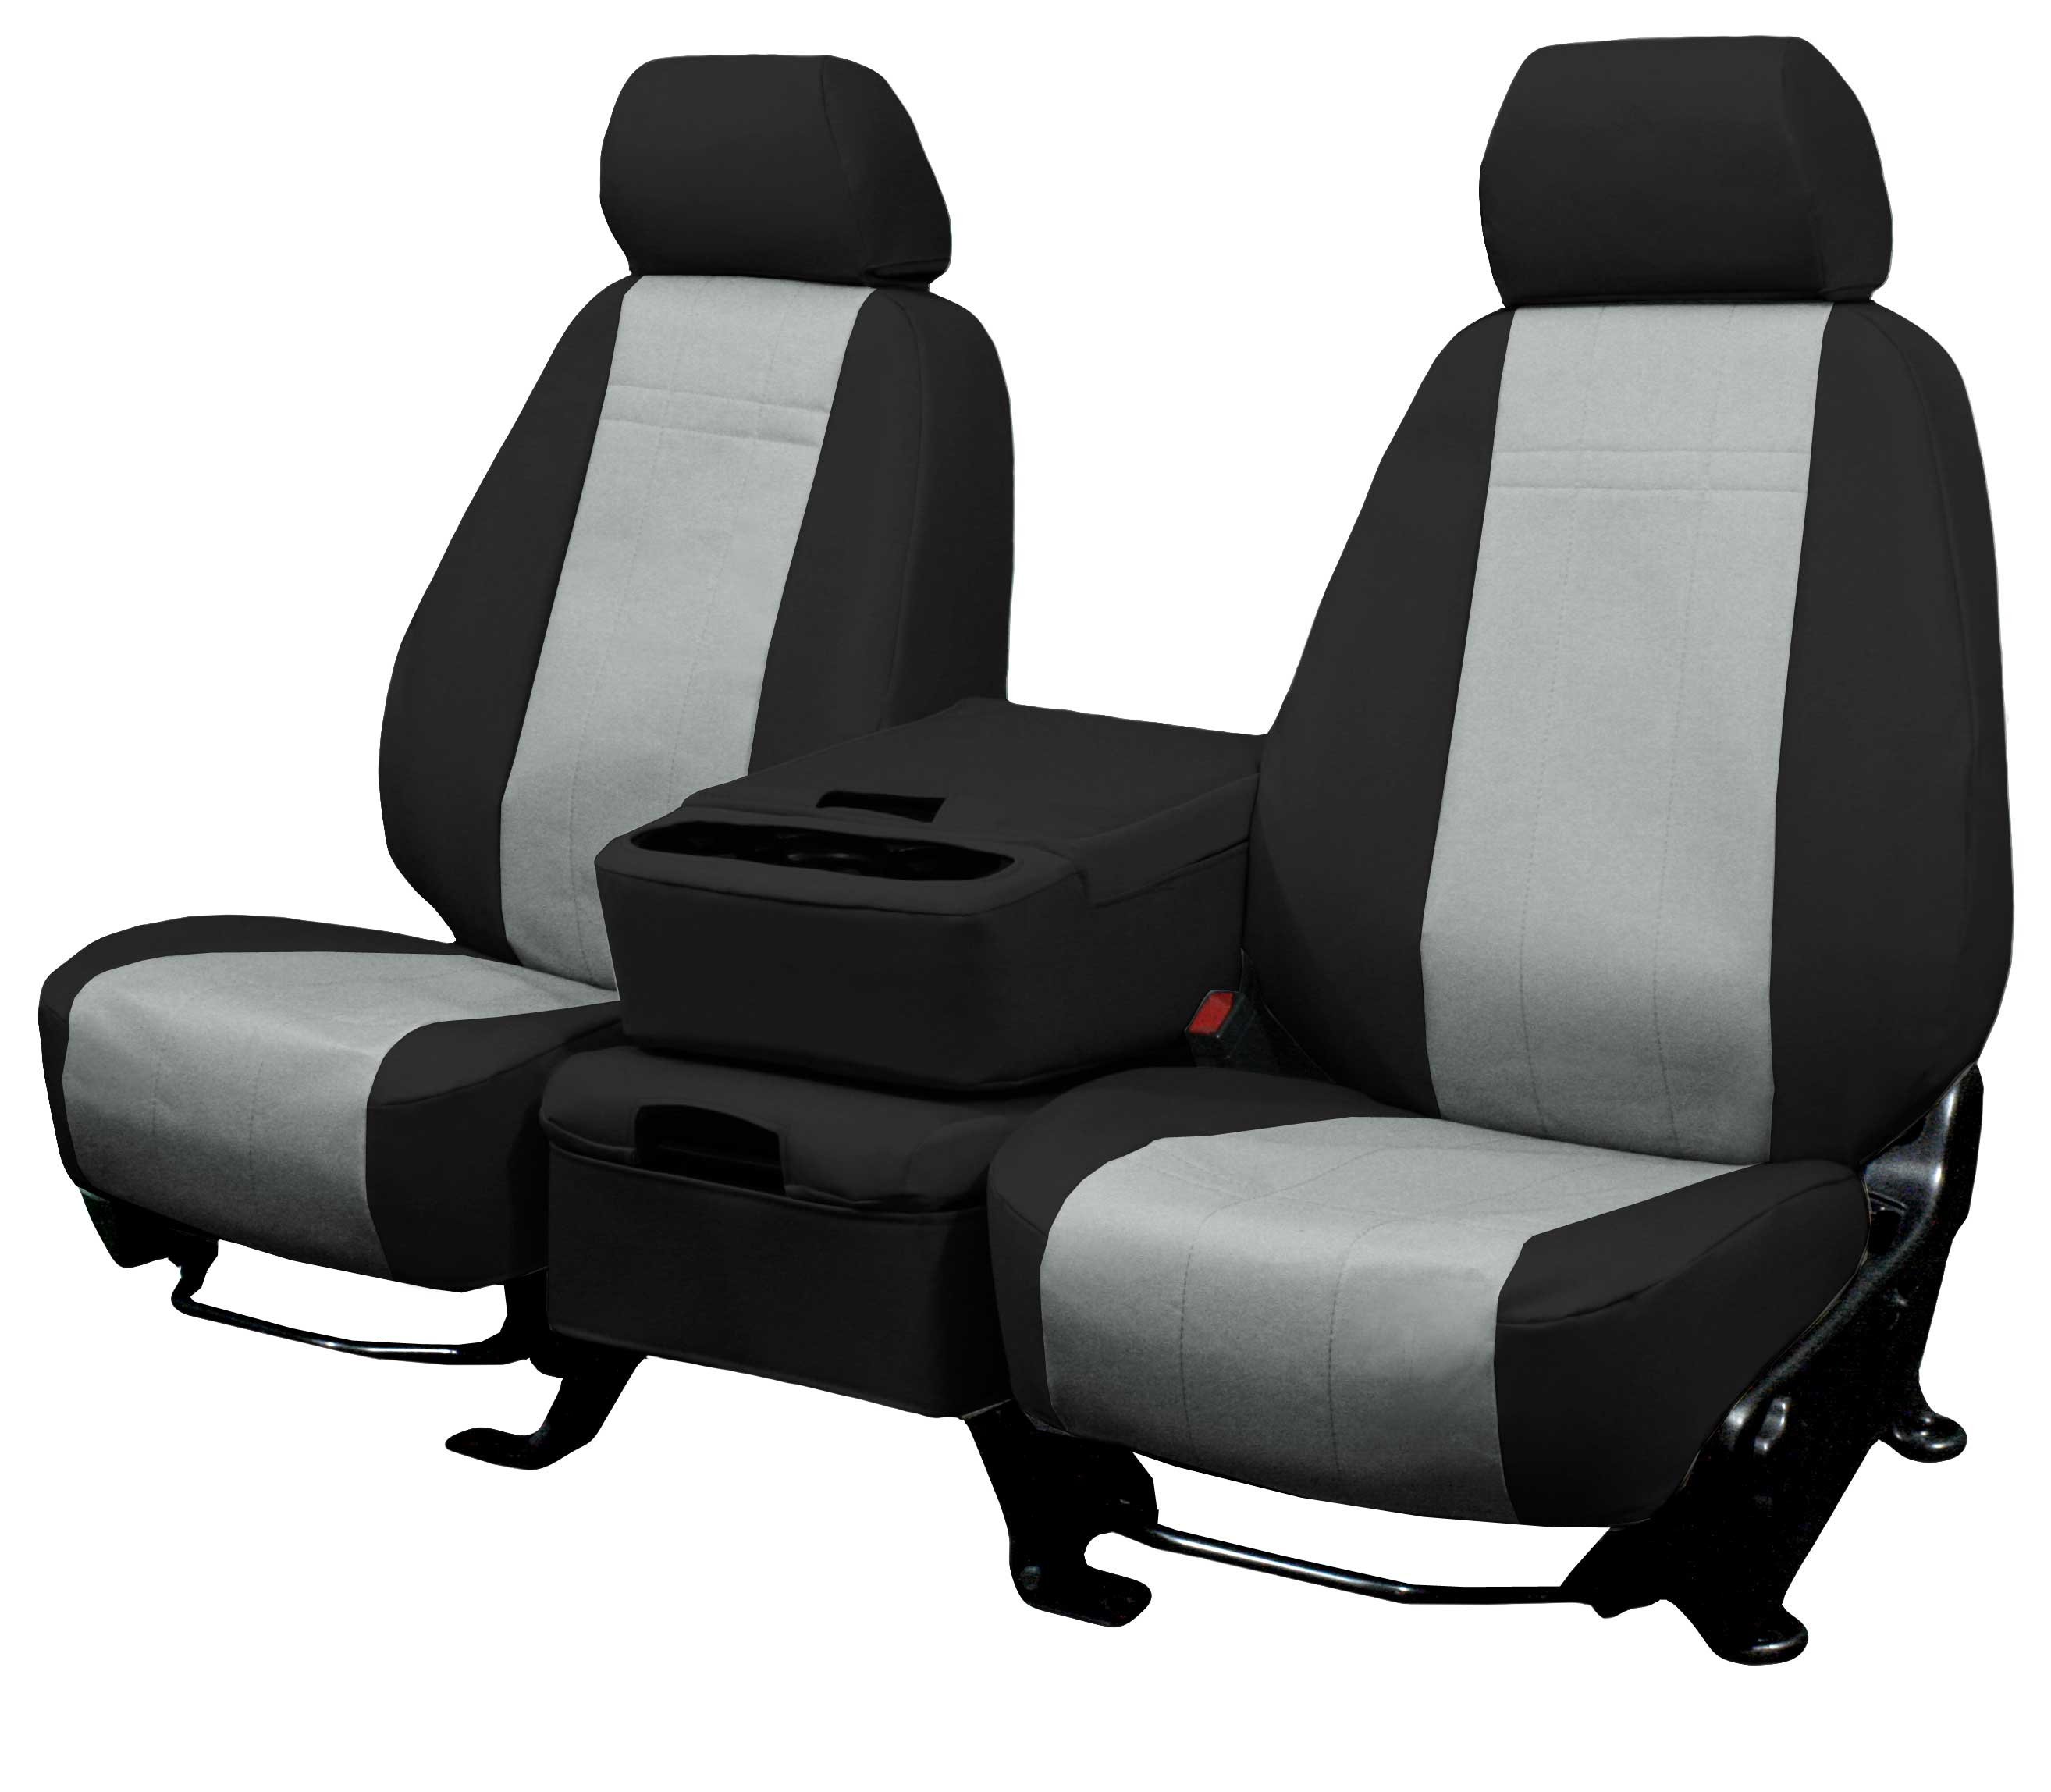 Chevy Suburban Leather Seat Cover Ebay